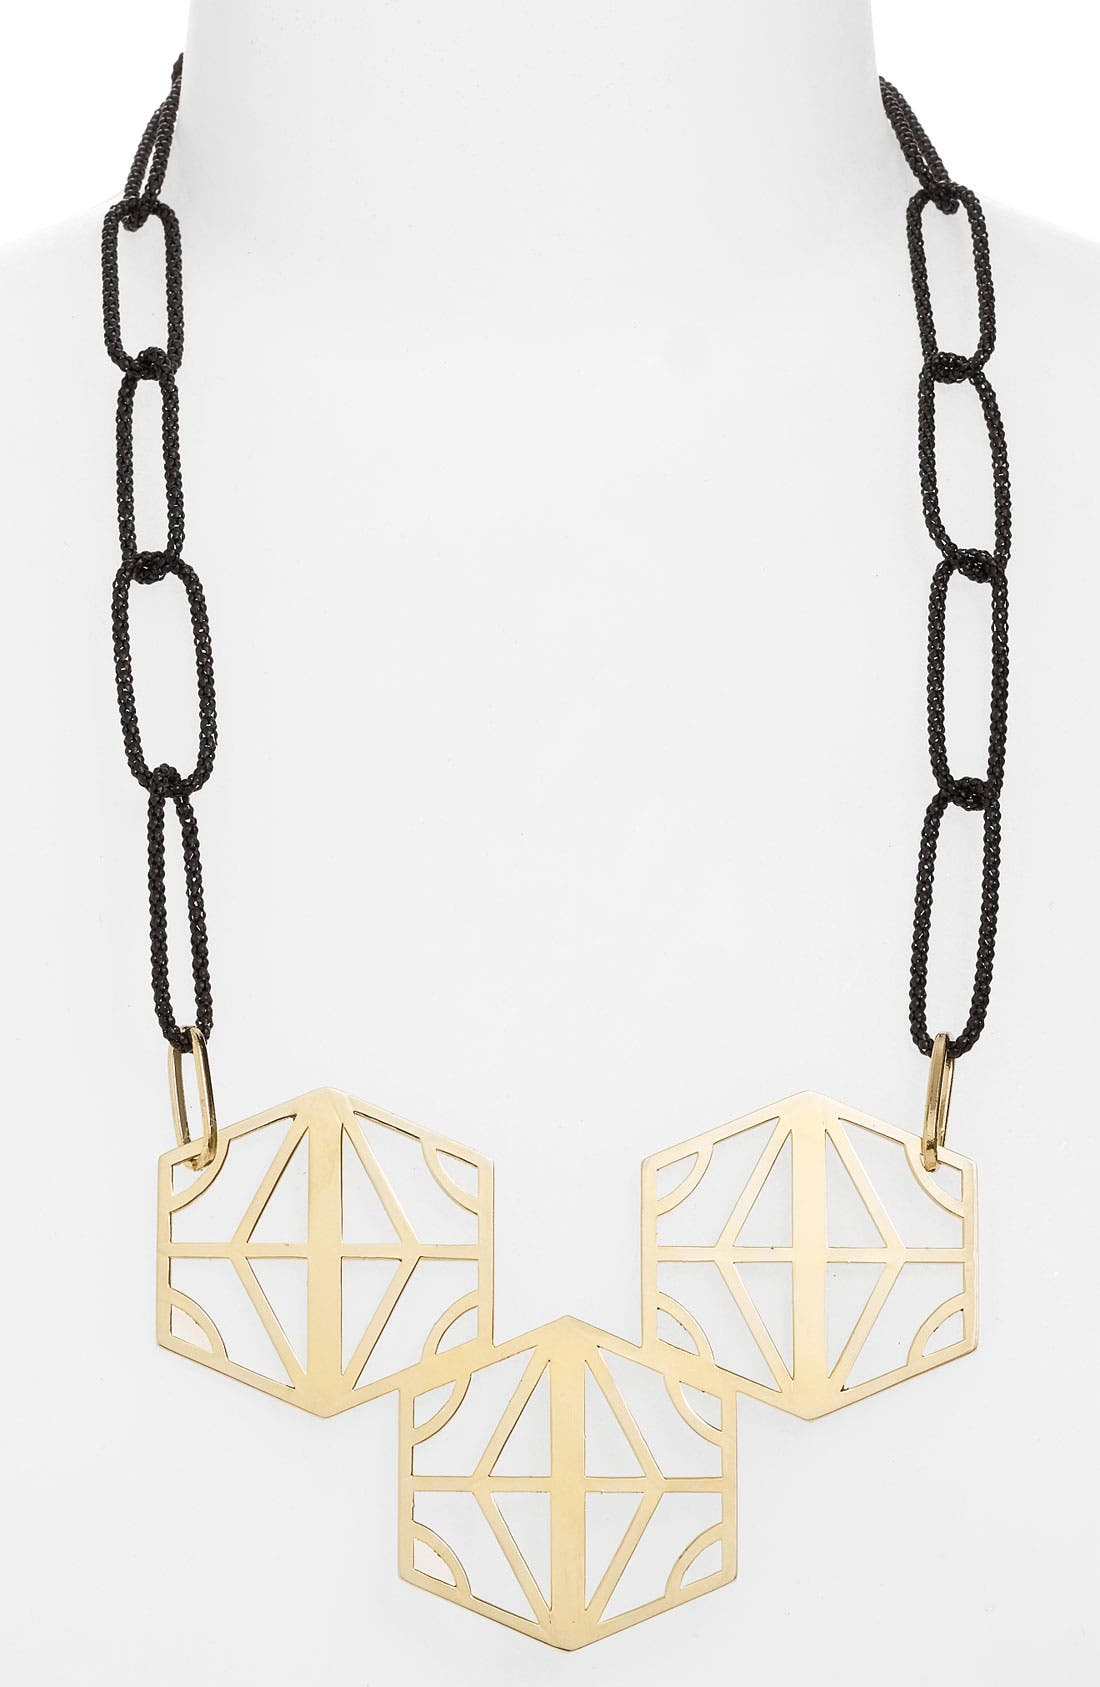 Main Image - Konstantina Plati Hexagon Statement Necklace